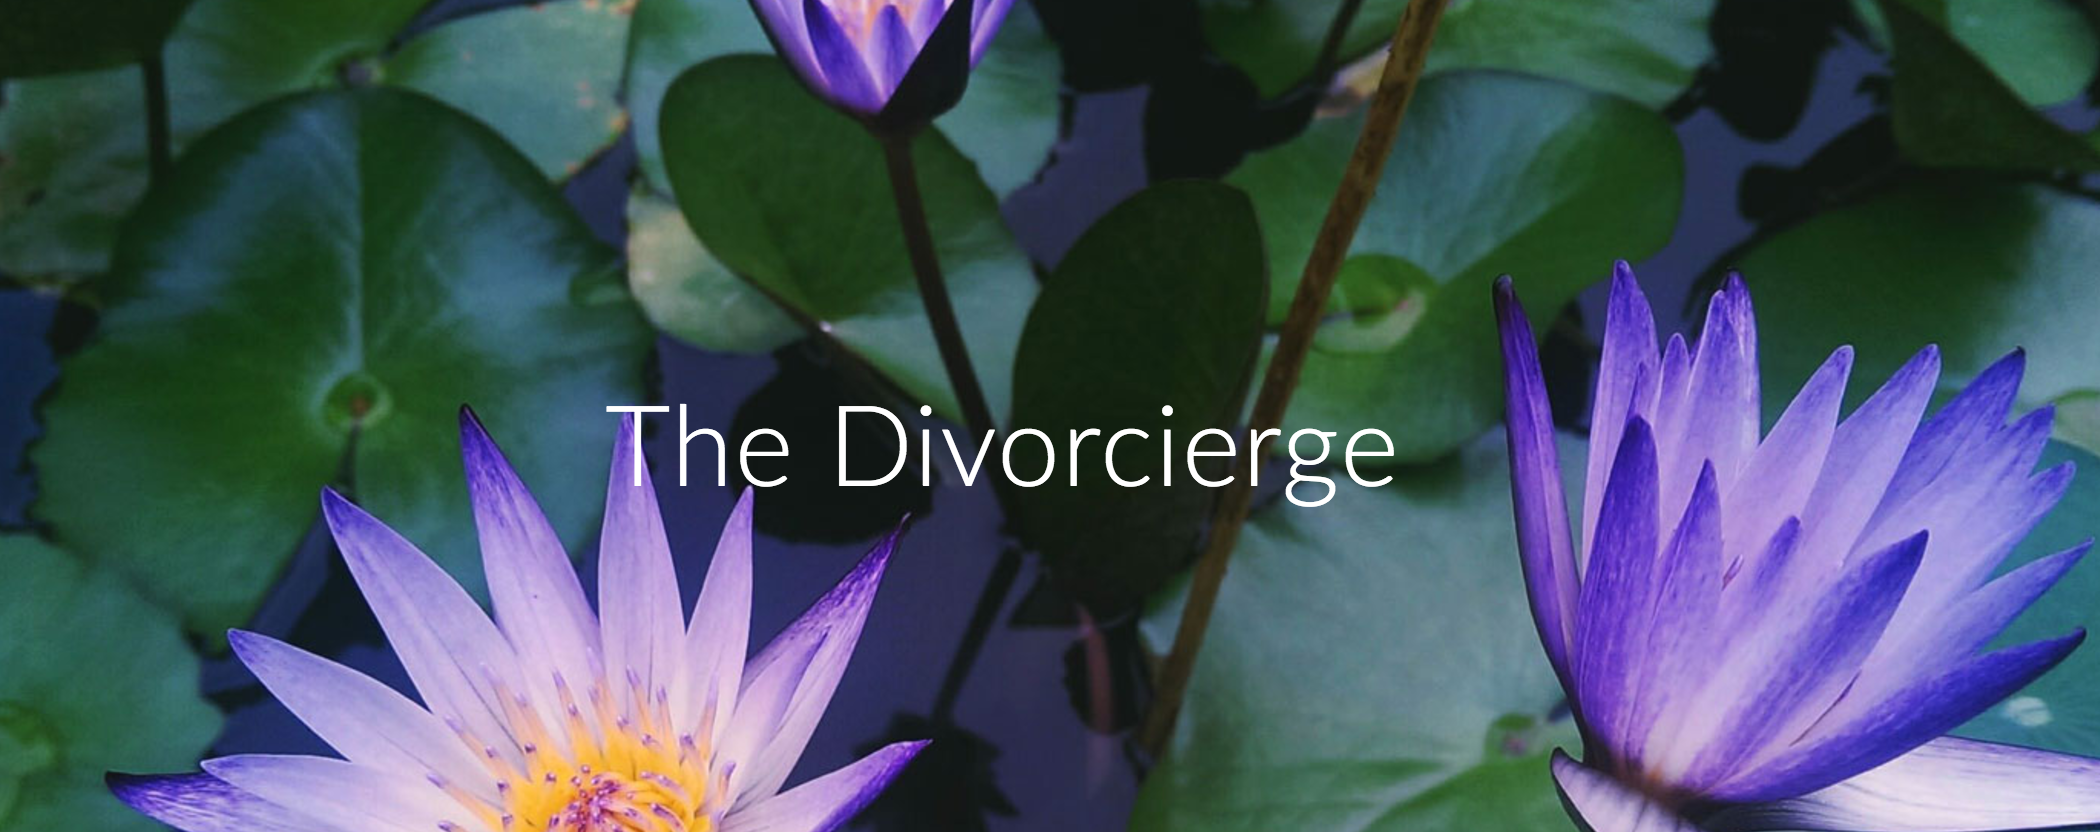 Guest Post by The Divorcierge: Get A Grip on Your Money!